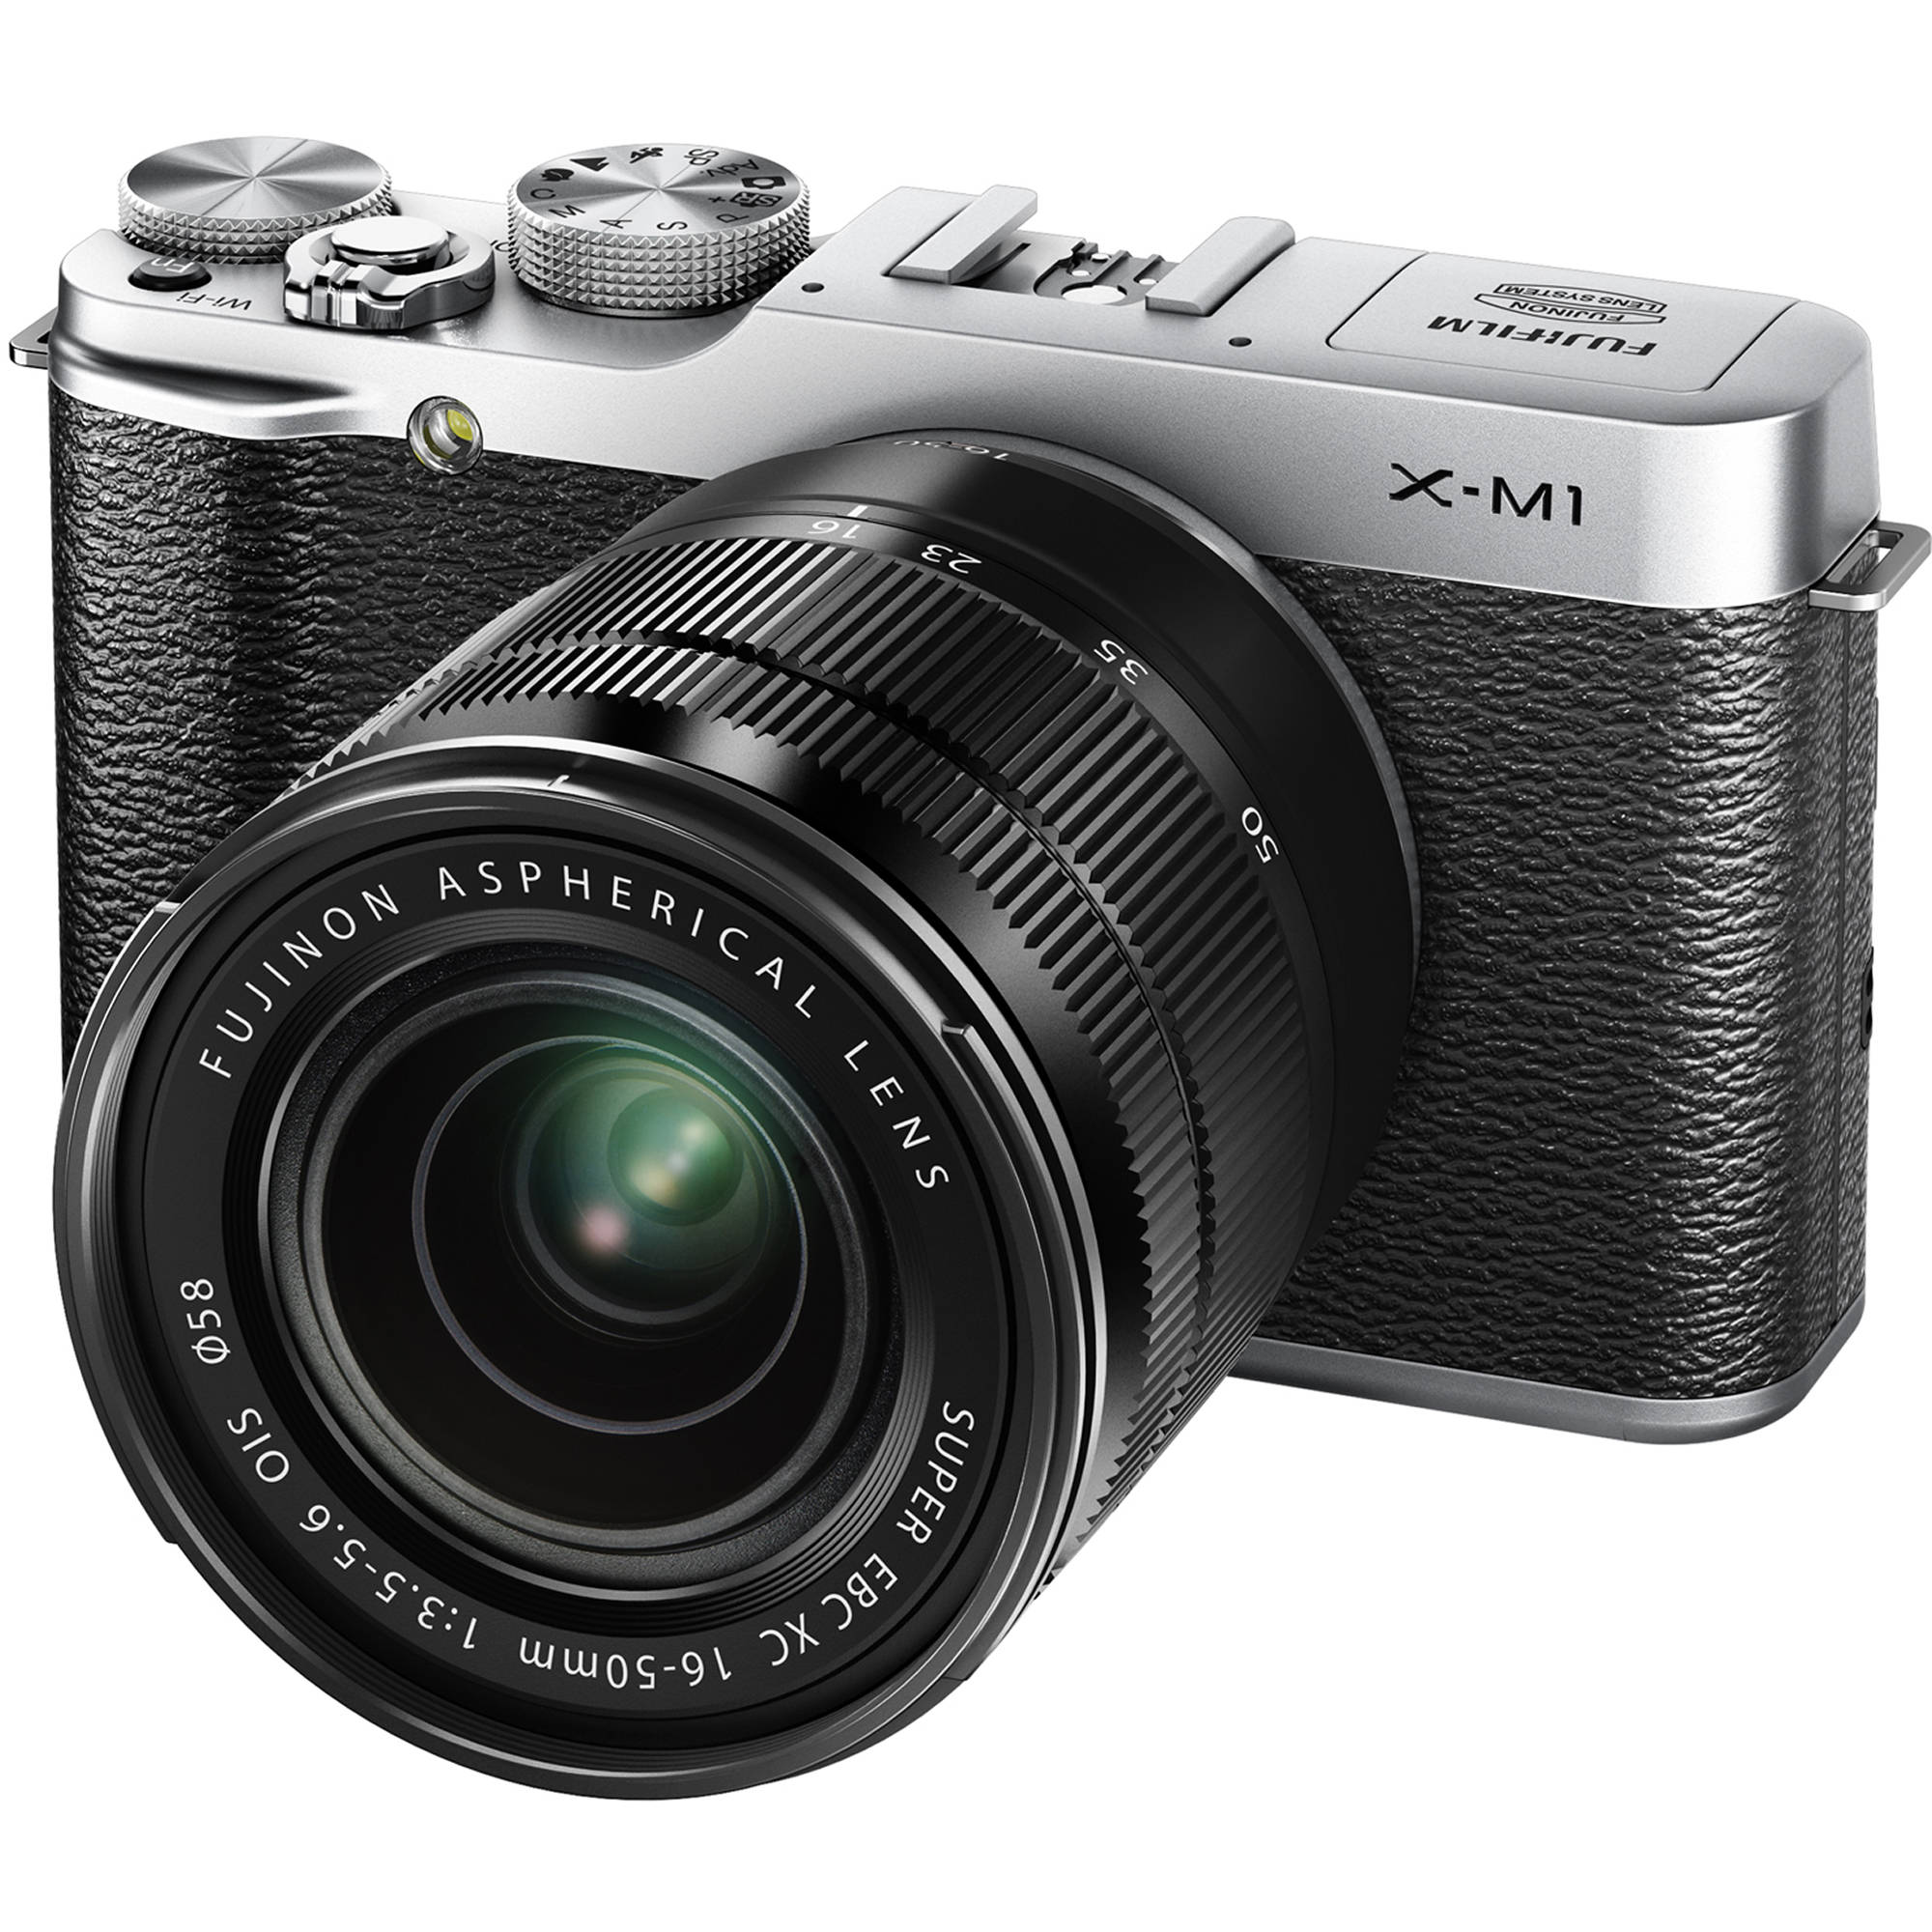 Fujifilm X M1 Mirrorless Digital Camera With 16 50mm 16391516